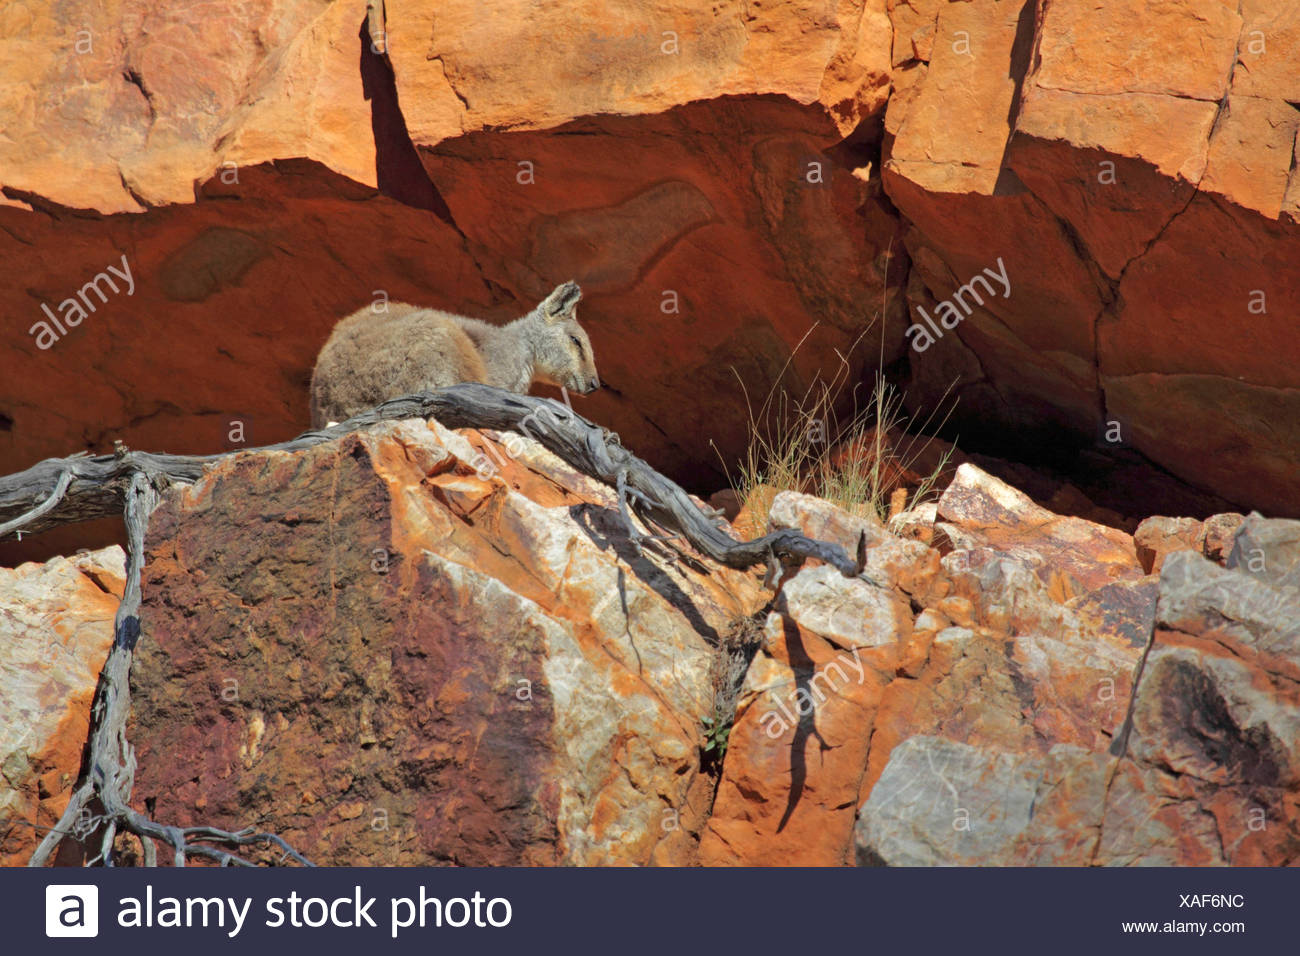 Black-footed rock wallaby (Petrogale lateralis), sitting in a rock crevice, Australia, Northern Territory, Western MacDonnell Ranges, Ormiston Gorge - Stock Image